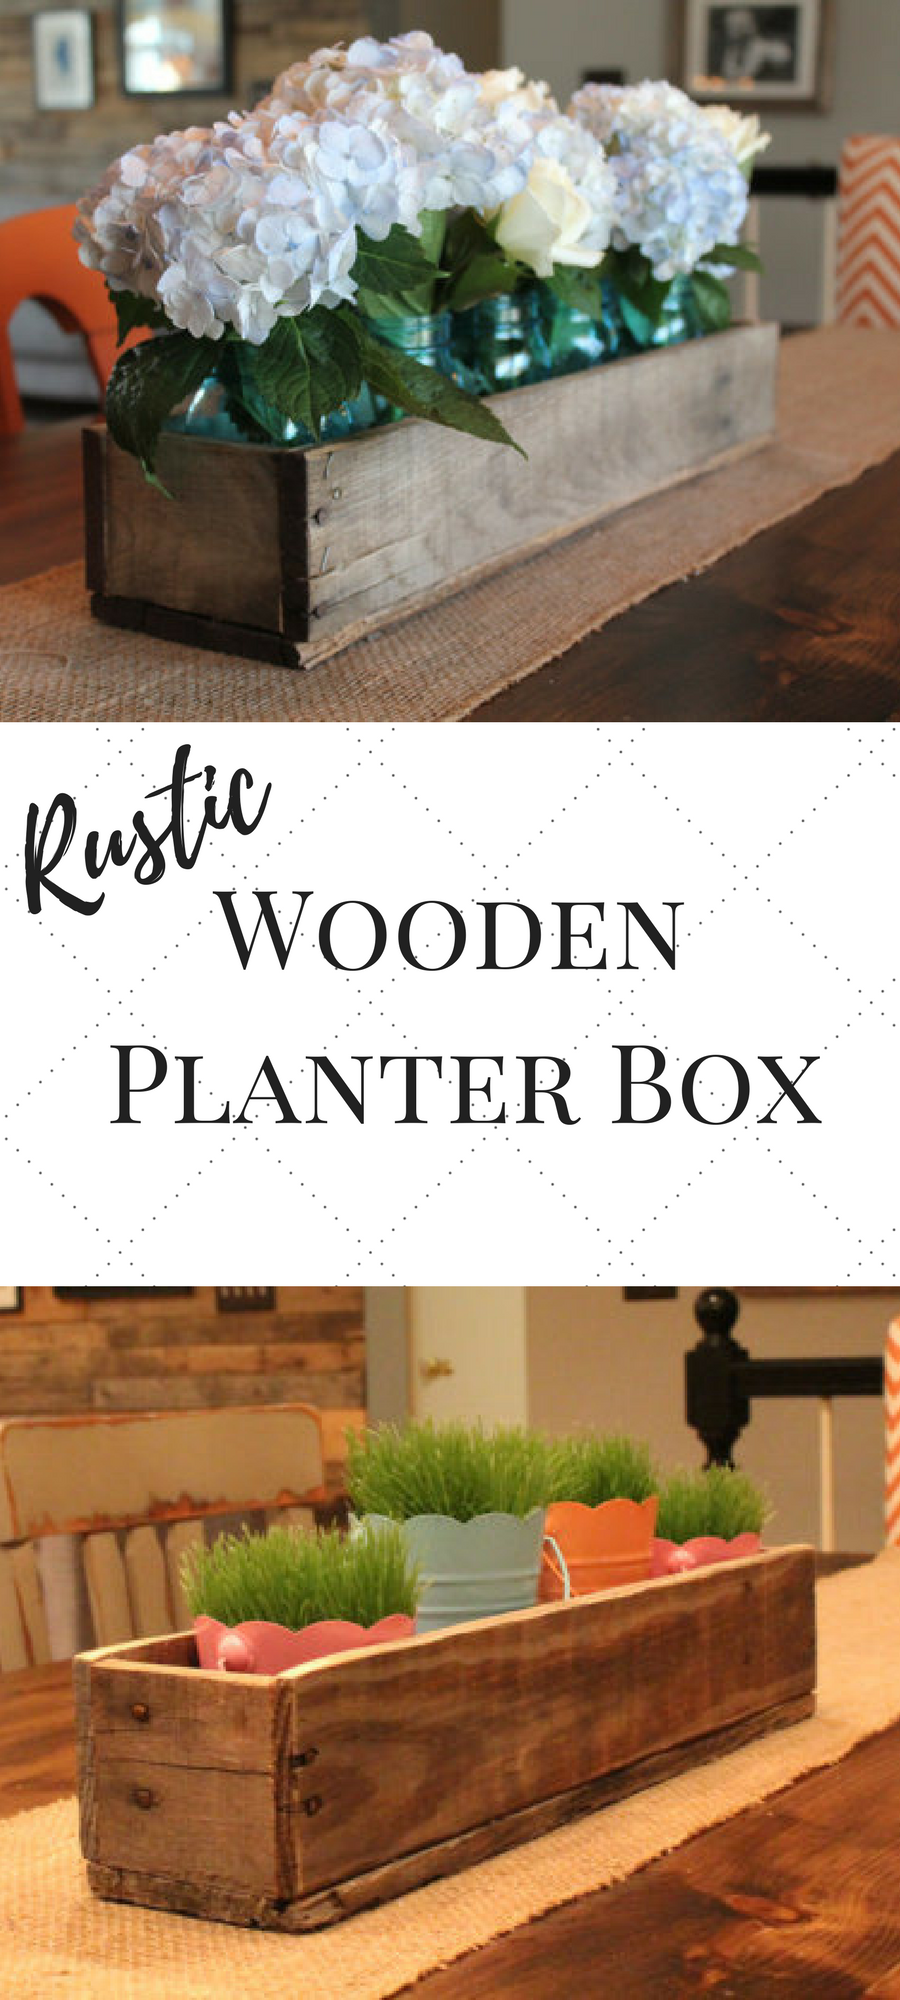 Love This Rustic Wooden Planter Box Would Look Great On My Runner On My Table Farmhouse Farmhousestyle Dinin Planter Boxes Wood Planter Box Wood Planters